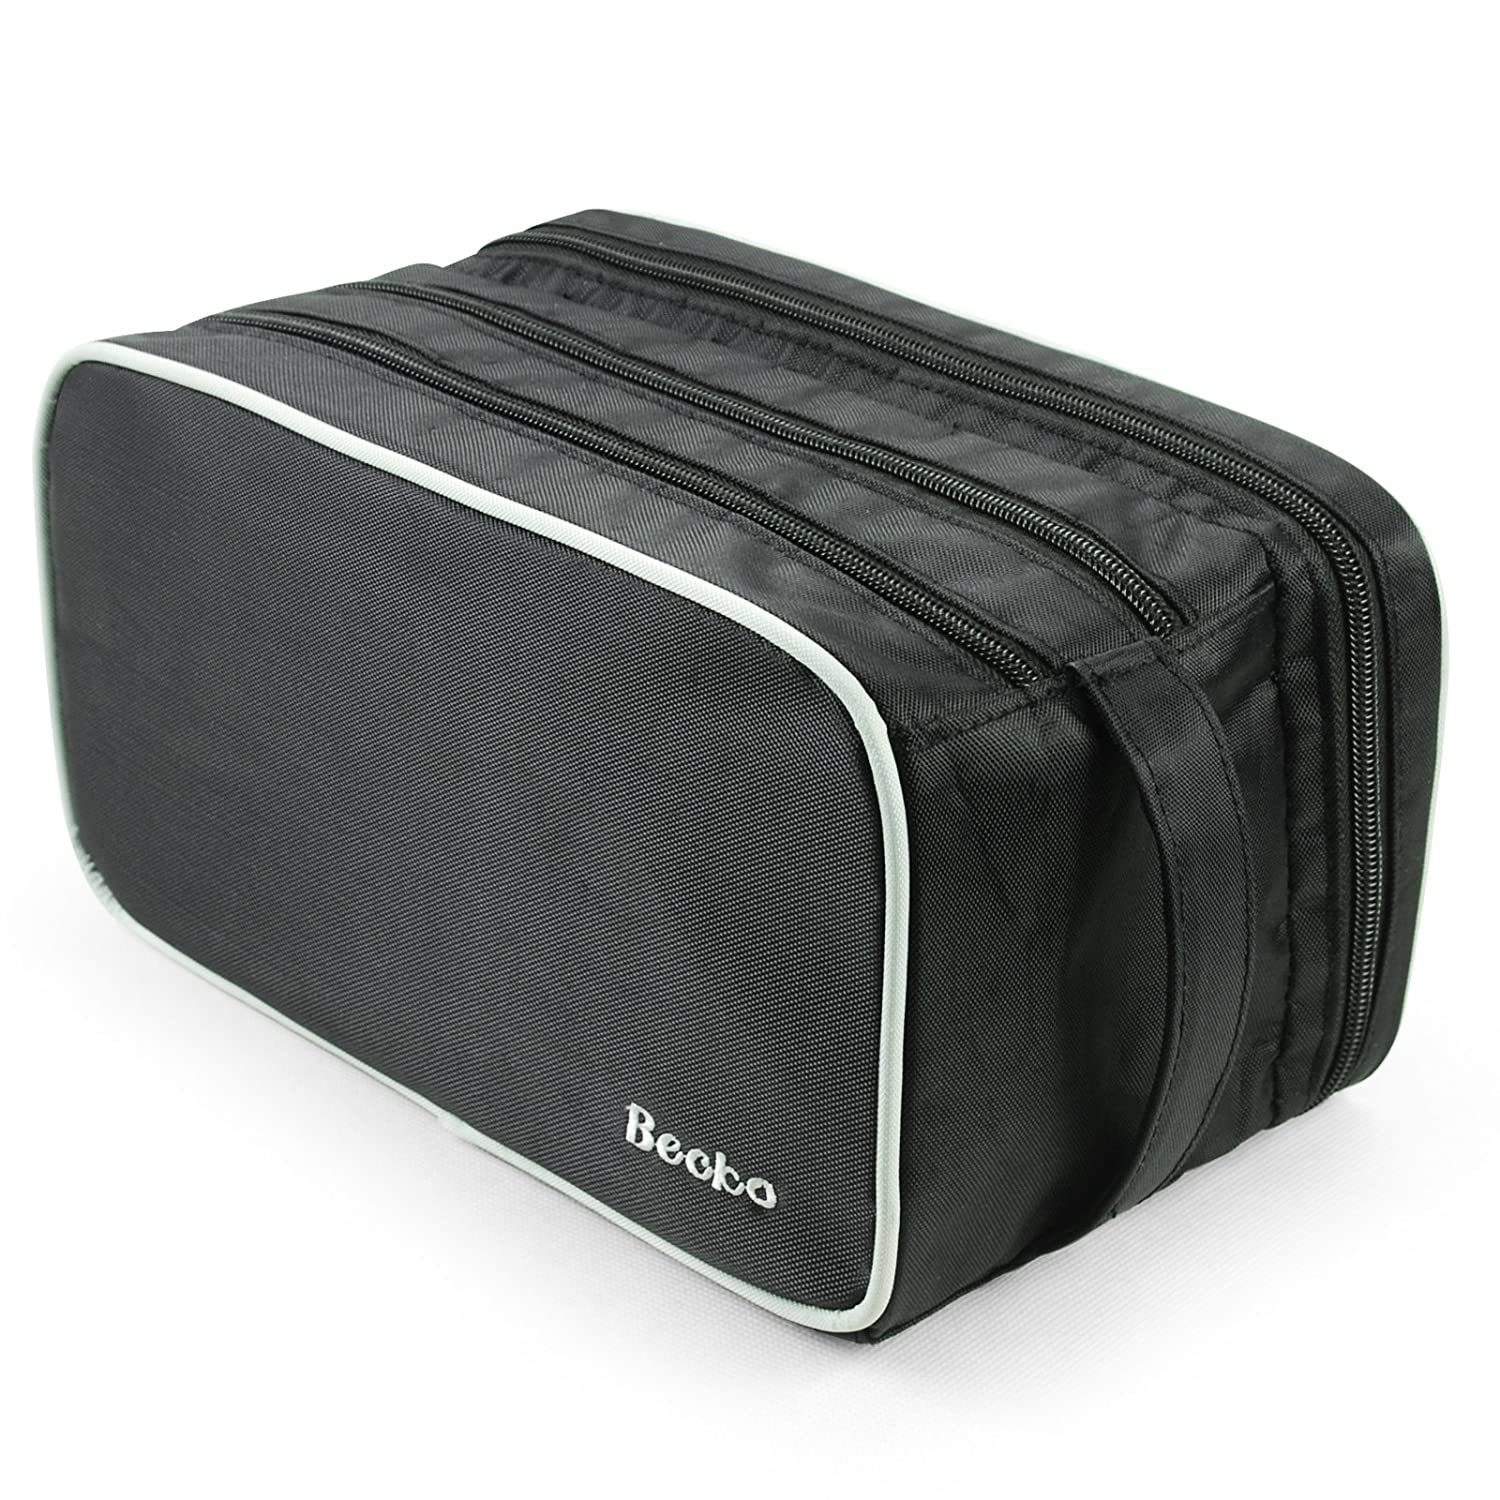 Becko Travel Toiletry Dopp Kit Travel Shaving Grooming Bag with Carry Handle for Men and Women